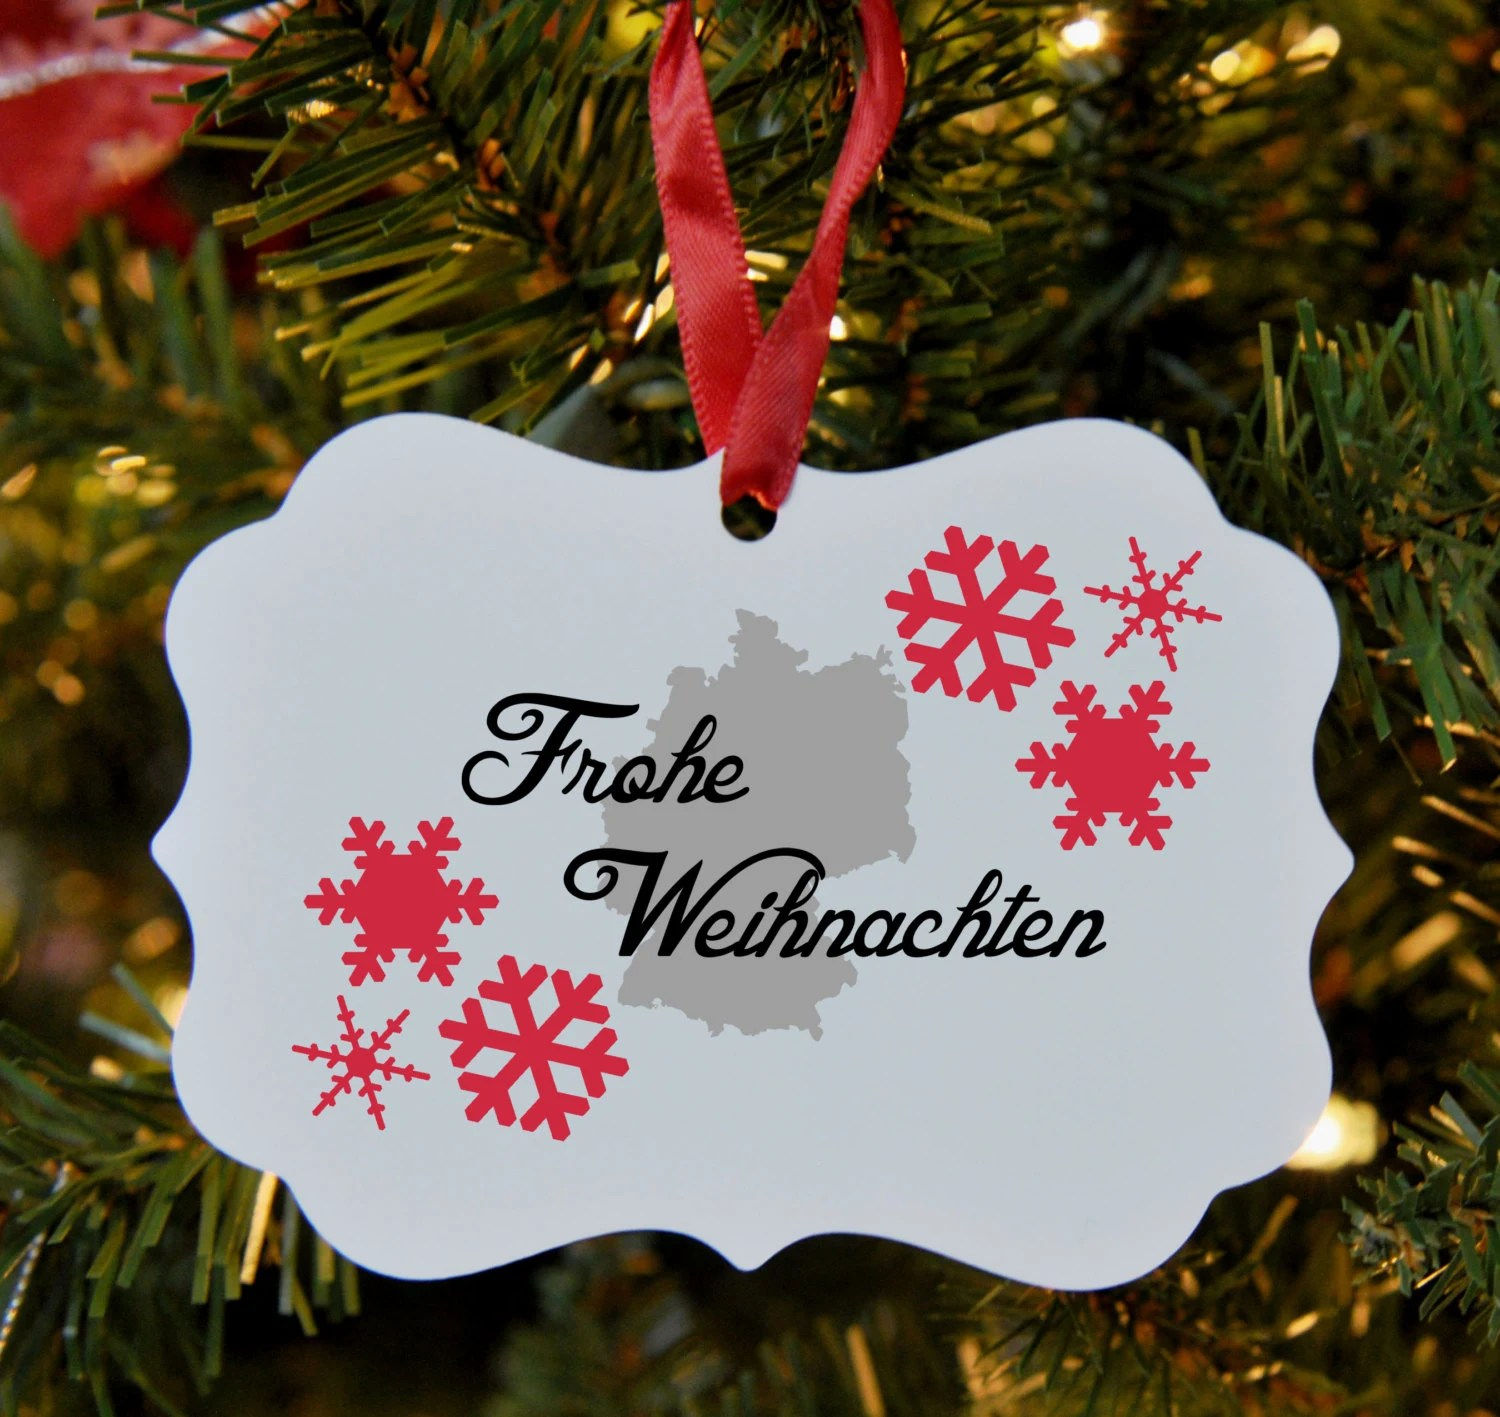 Frohe Weihnachten German Merry Christmas Ornament Germany Frohe Weihnachten